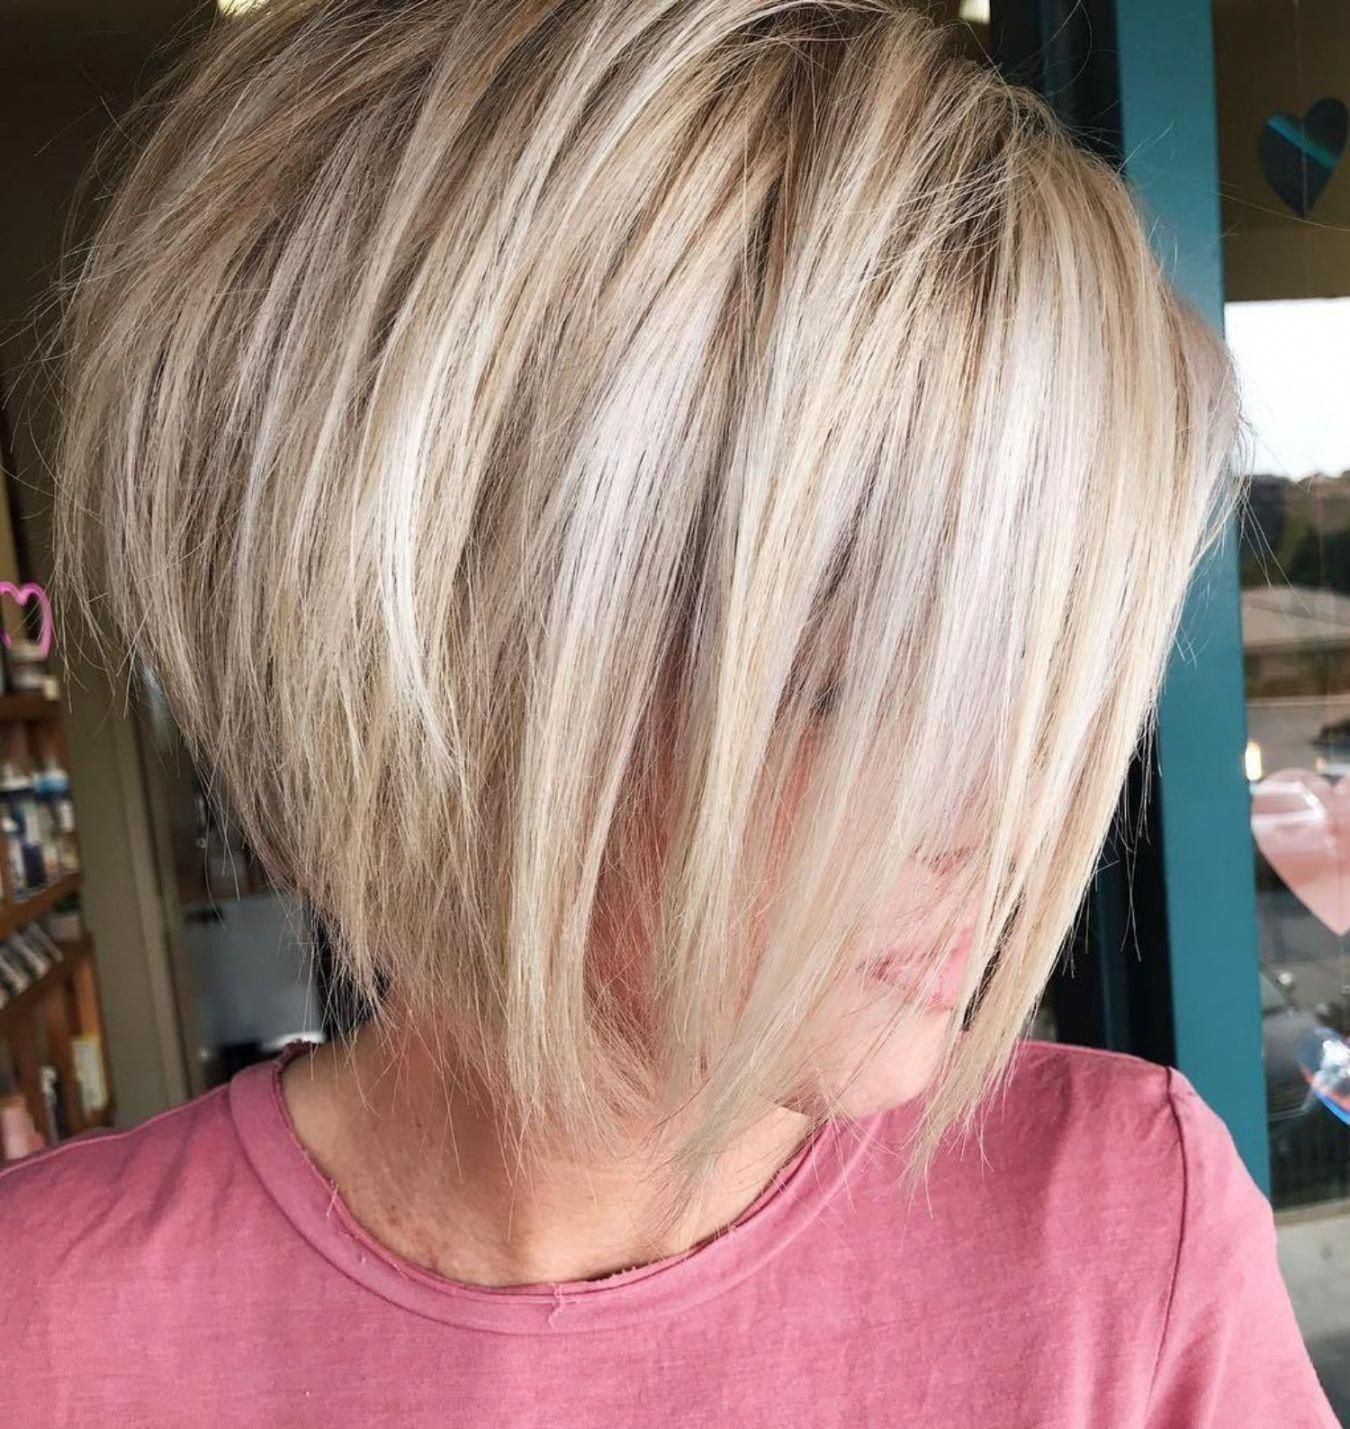 Shaggy Rounded Bob with Teased Roots #Bobhaircut | Choppy bob hairstyles,  Thick hair styles, Short hairstyles for thick hair